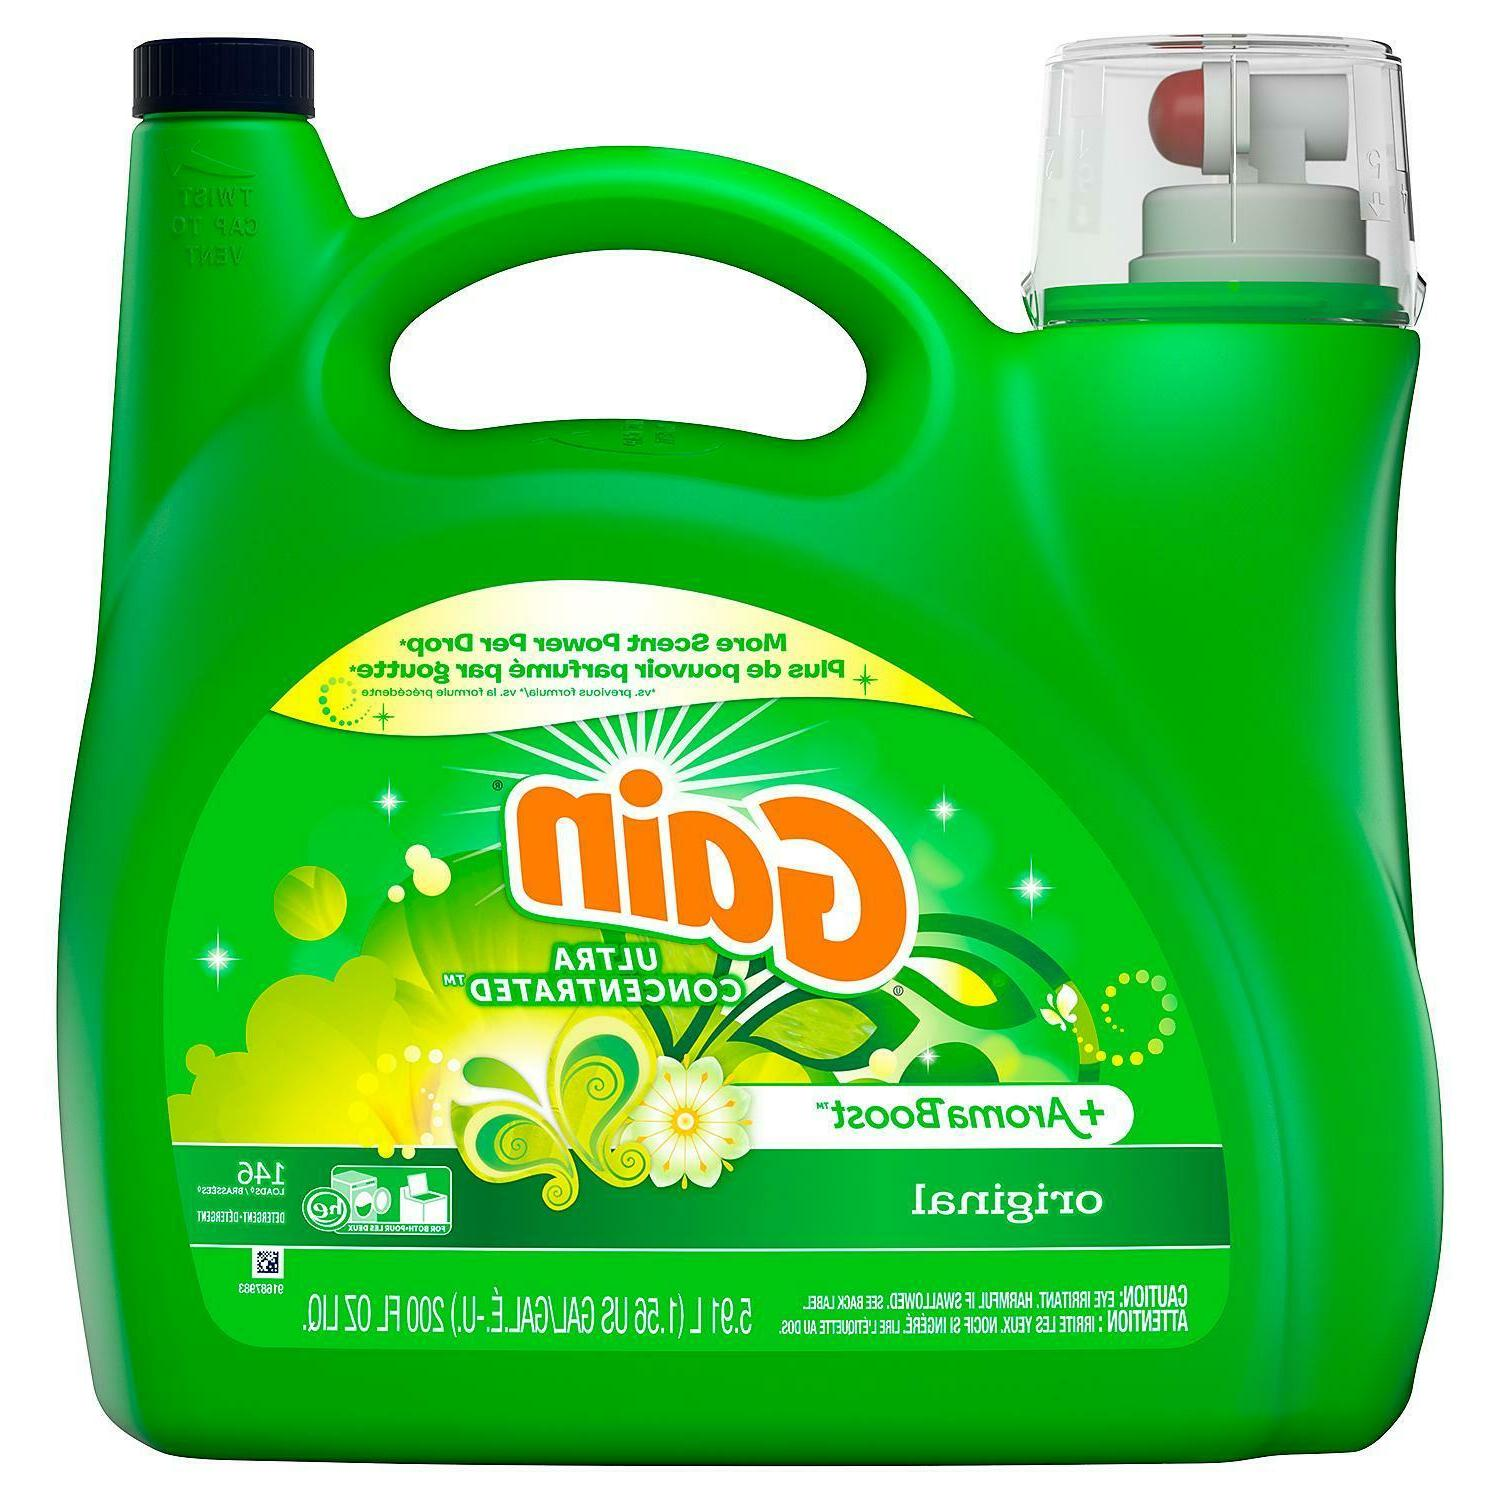 aromaboost ultra concentrated he liquid laundry detergent